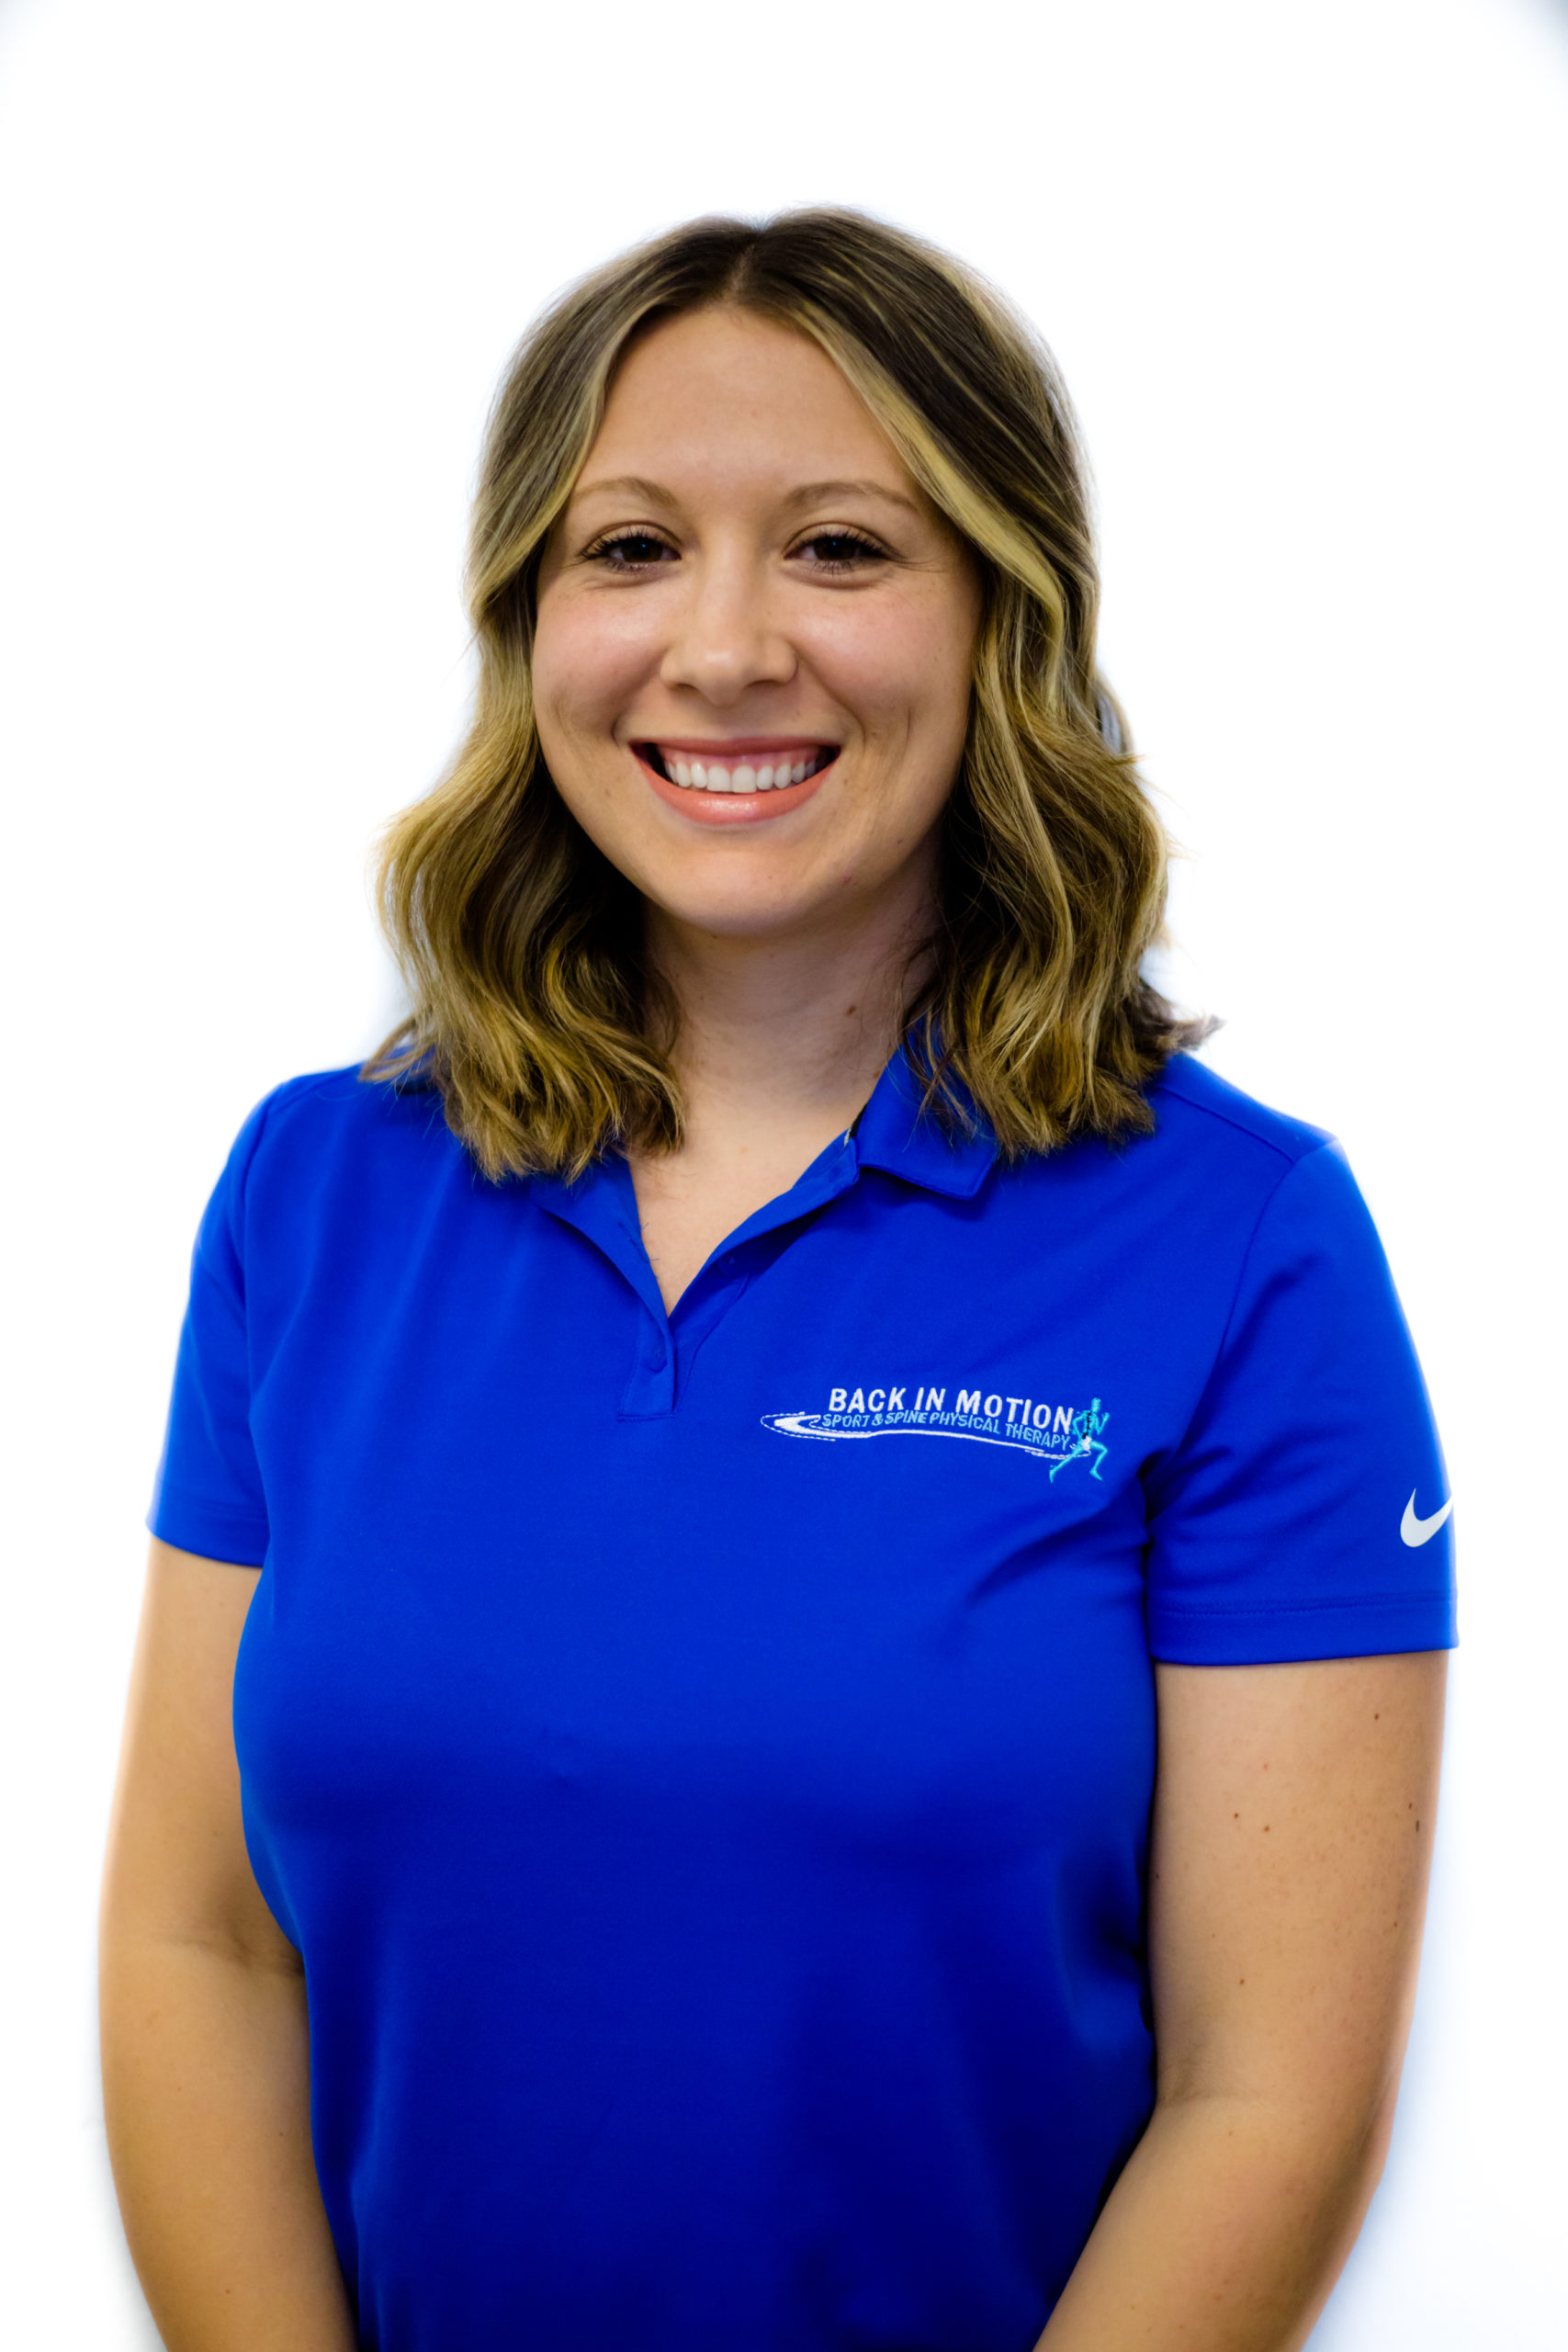 Ashley Gray is one of BIM Fitness & Performances lead personal trainers in Fort Myers, FL